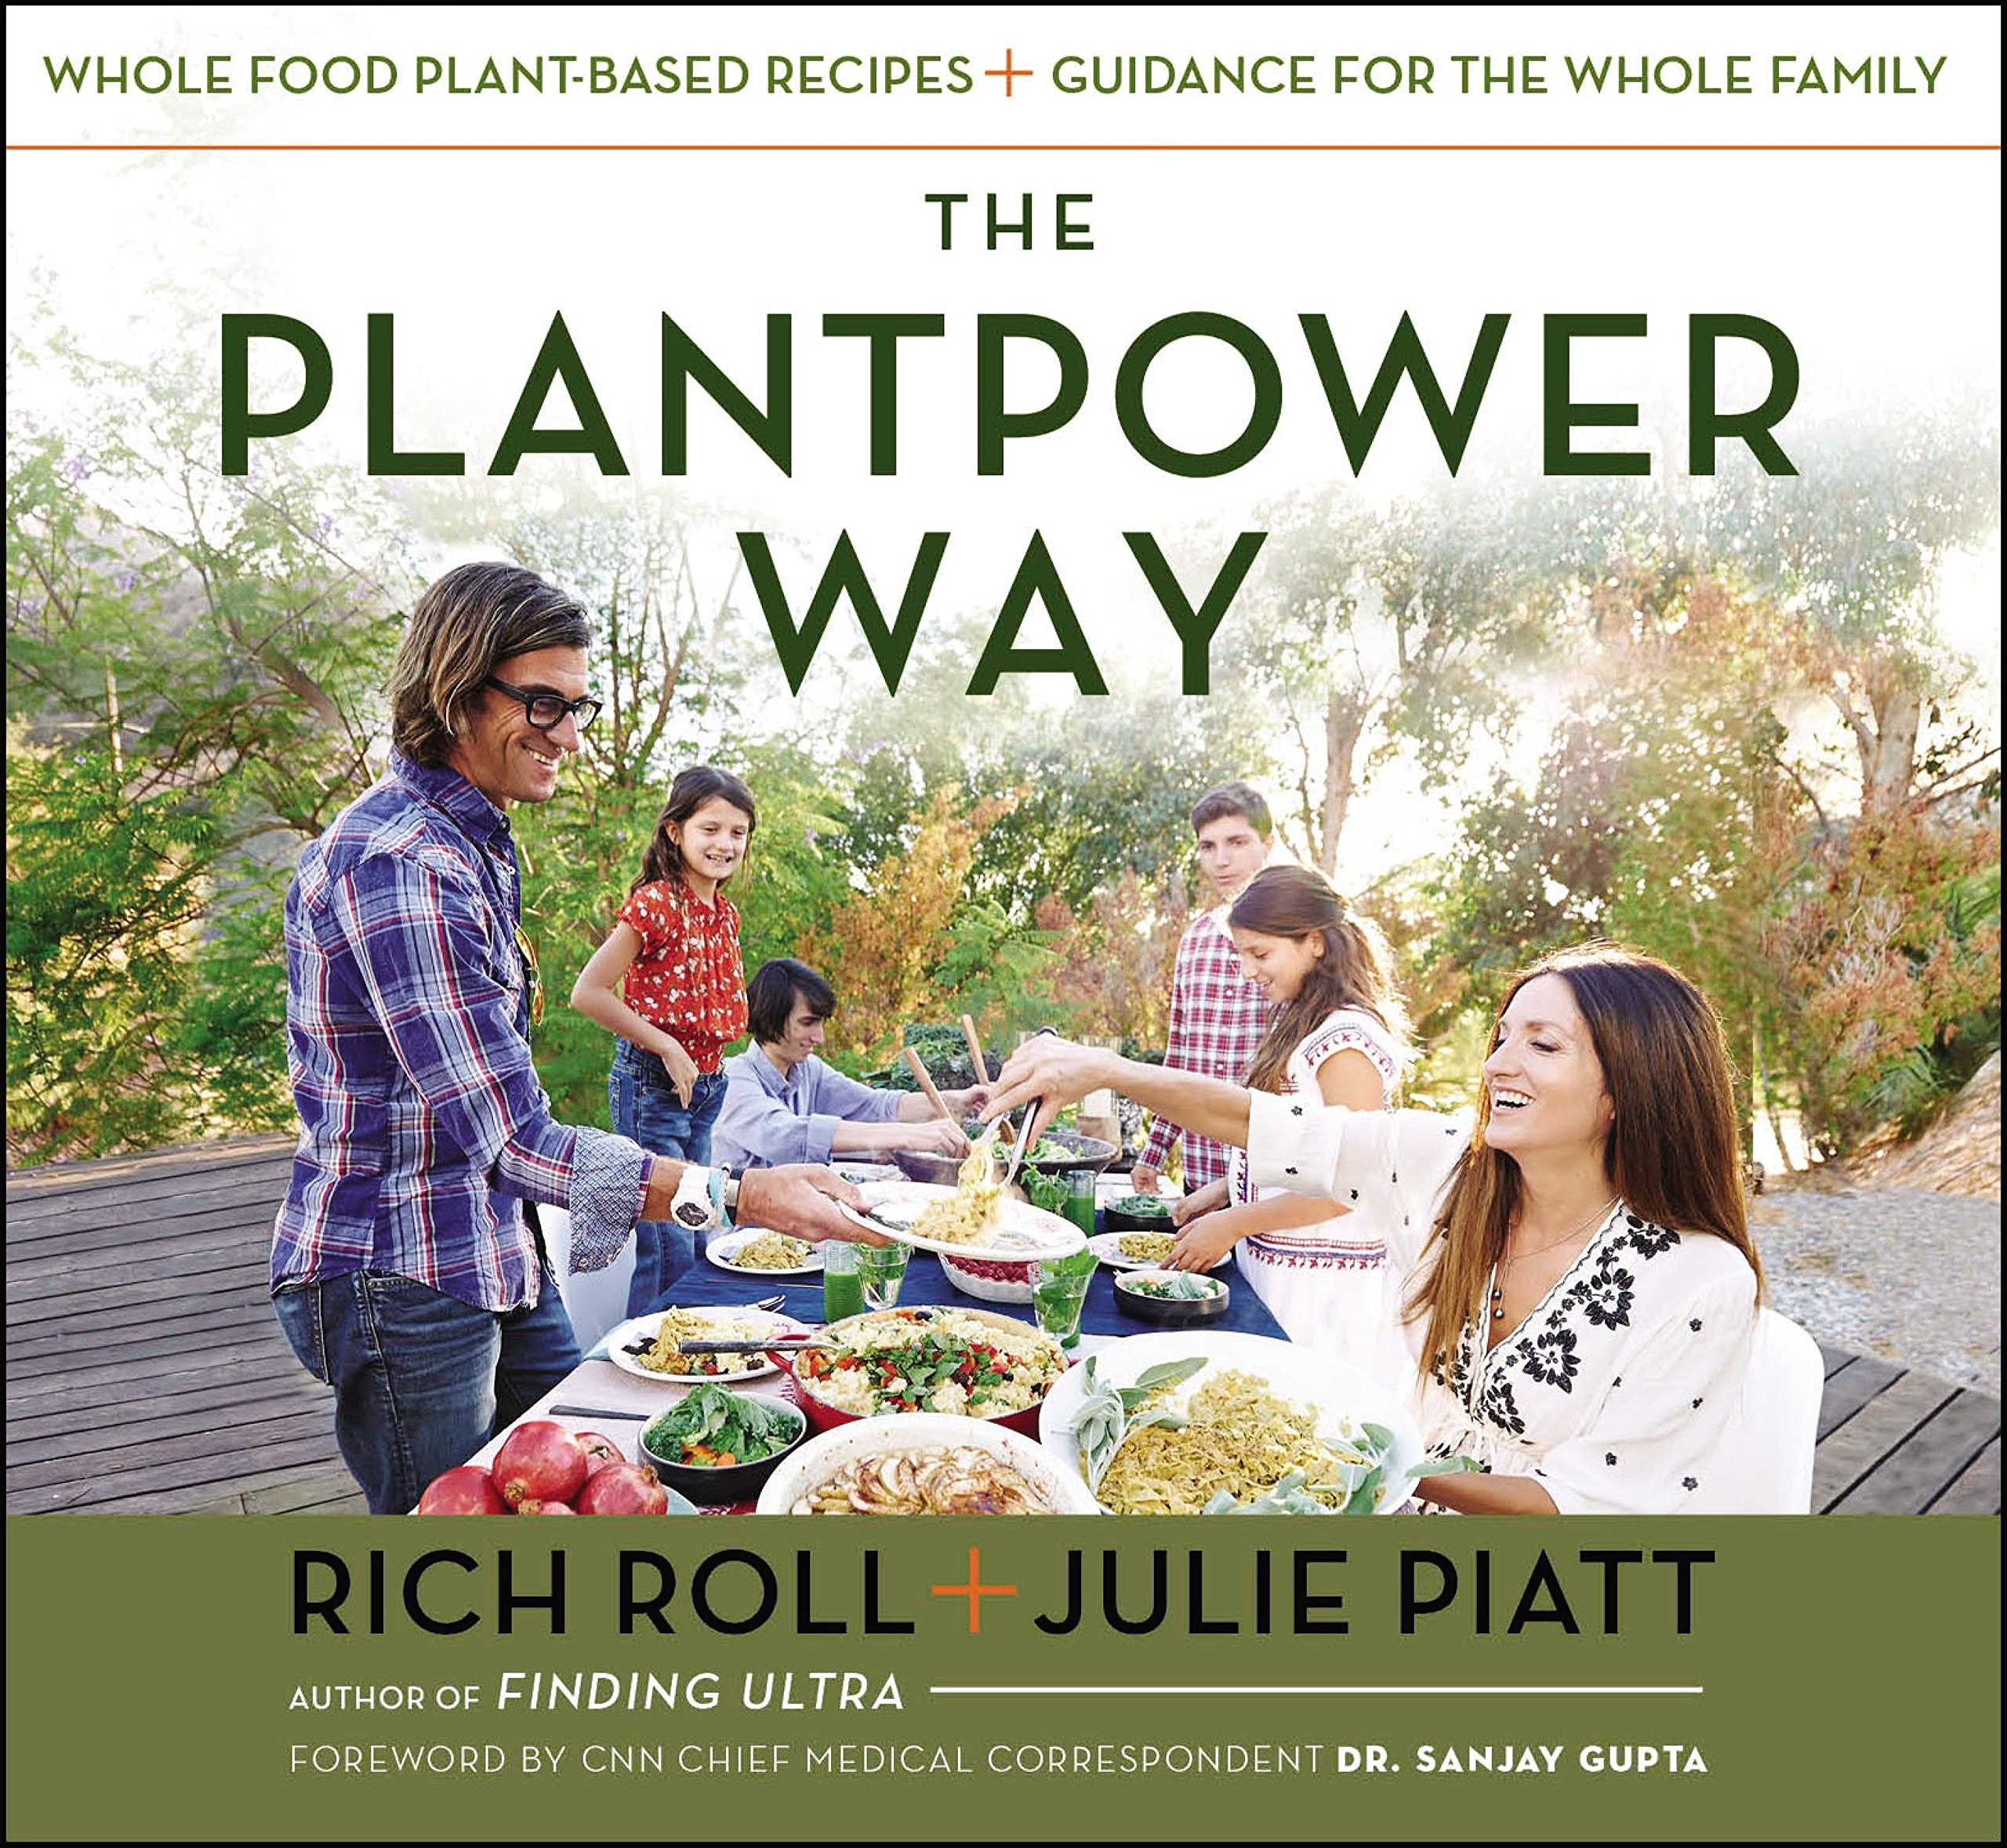 The Plantpower Way: Whole Food Plant-Based Recipes and Guidance for The Whole Family by Avery Publishing Group